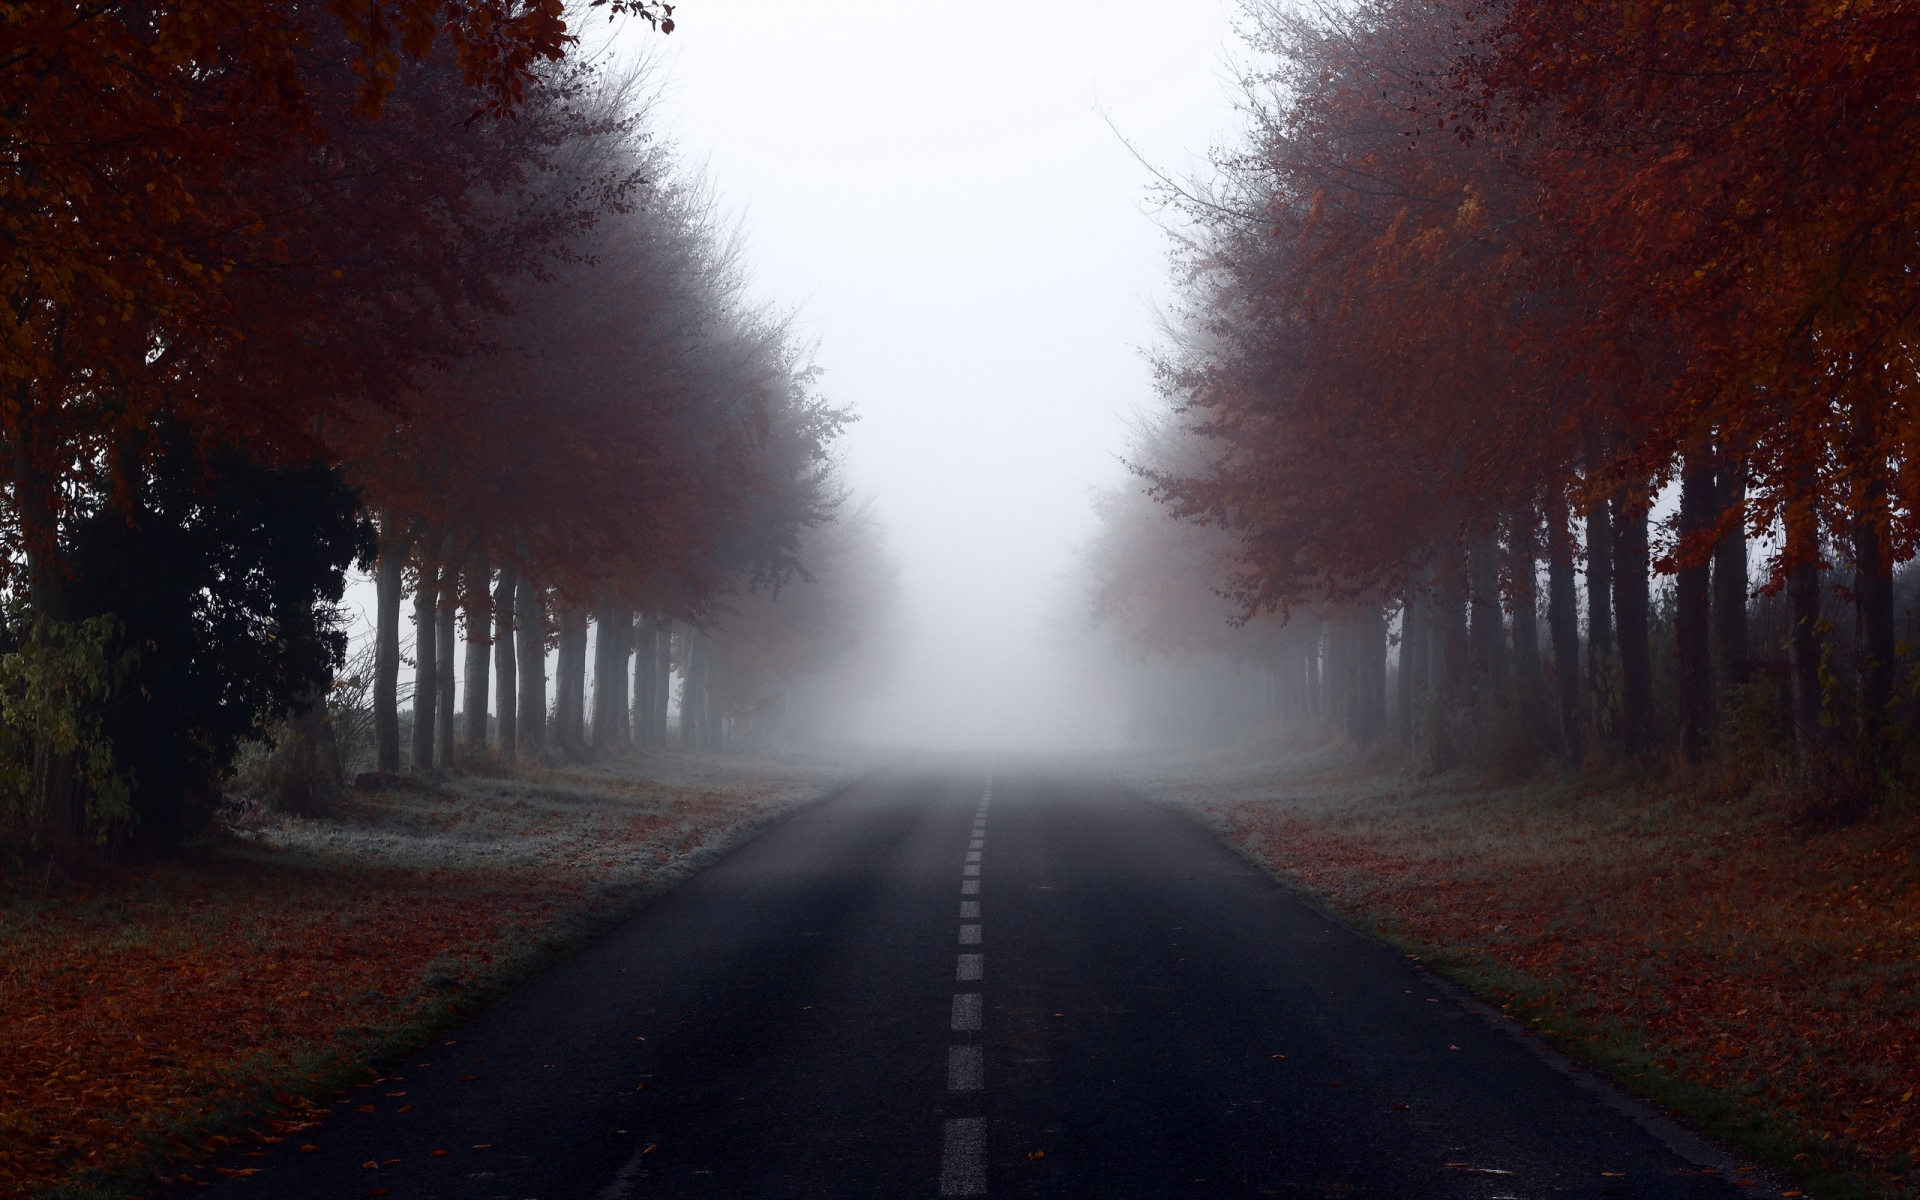 Fall Pictures For Facebook Wallpaper Red Autumn Trees Road Foggy Wallpapers Red Autumn Trees